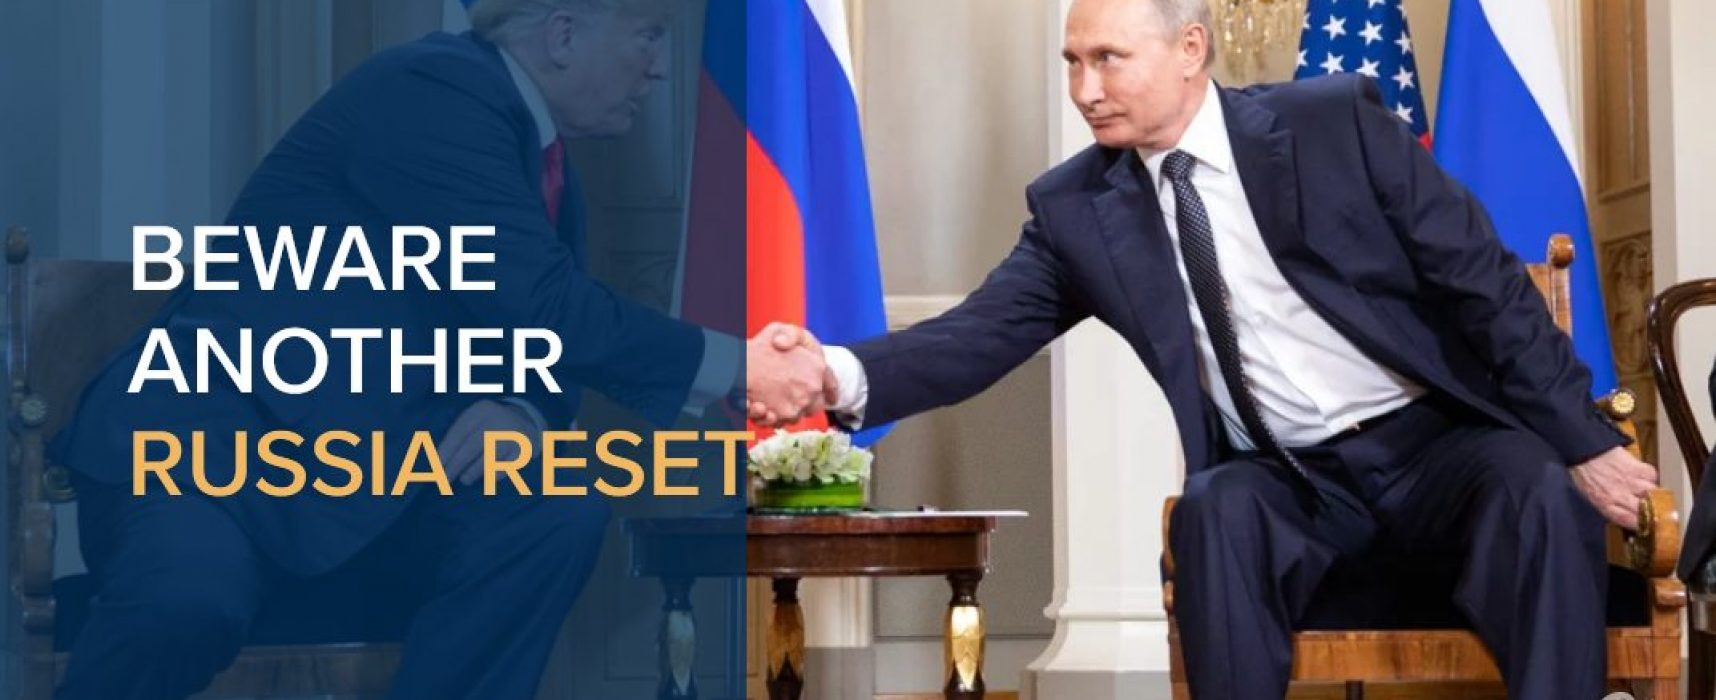 Beware another Russia reset